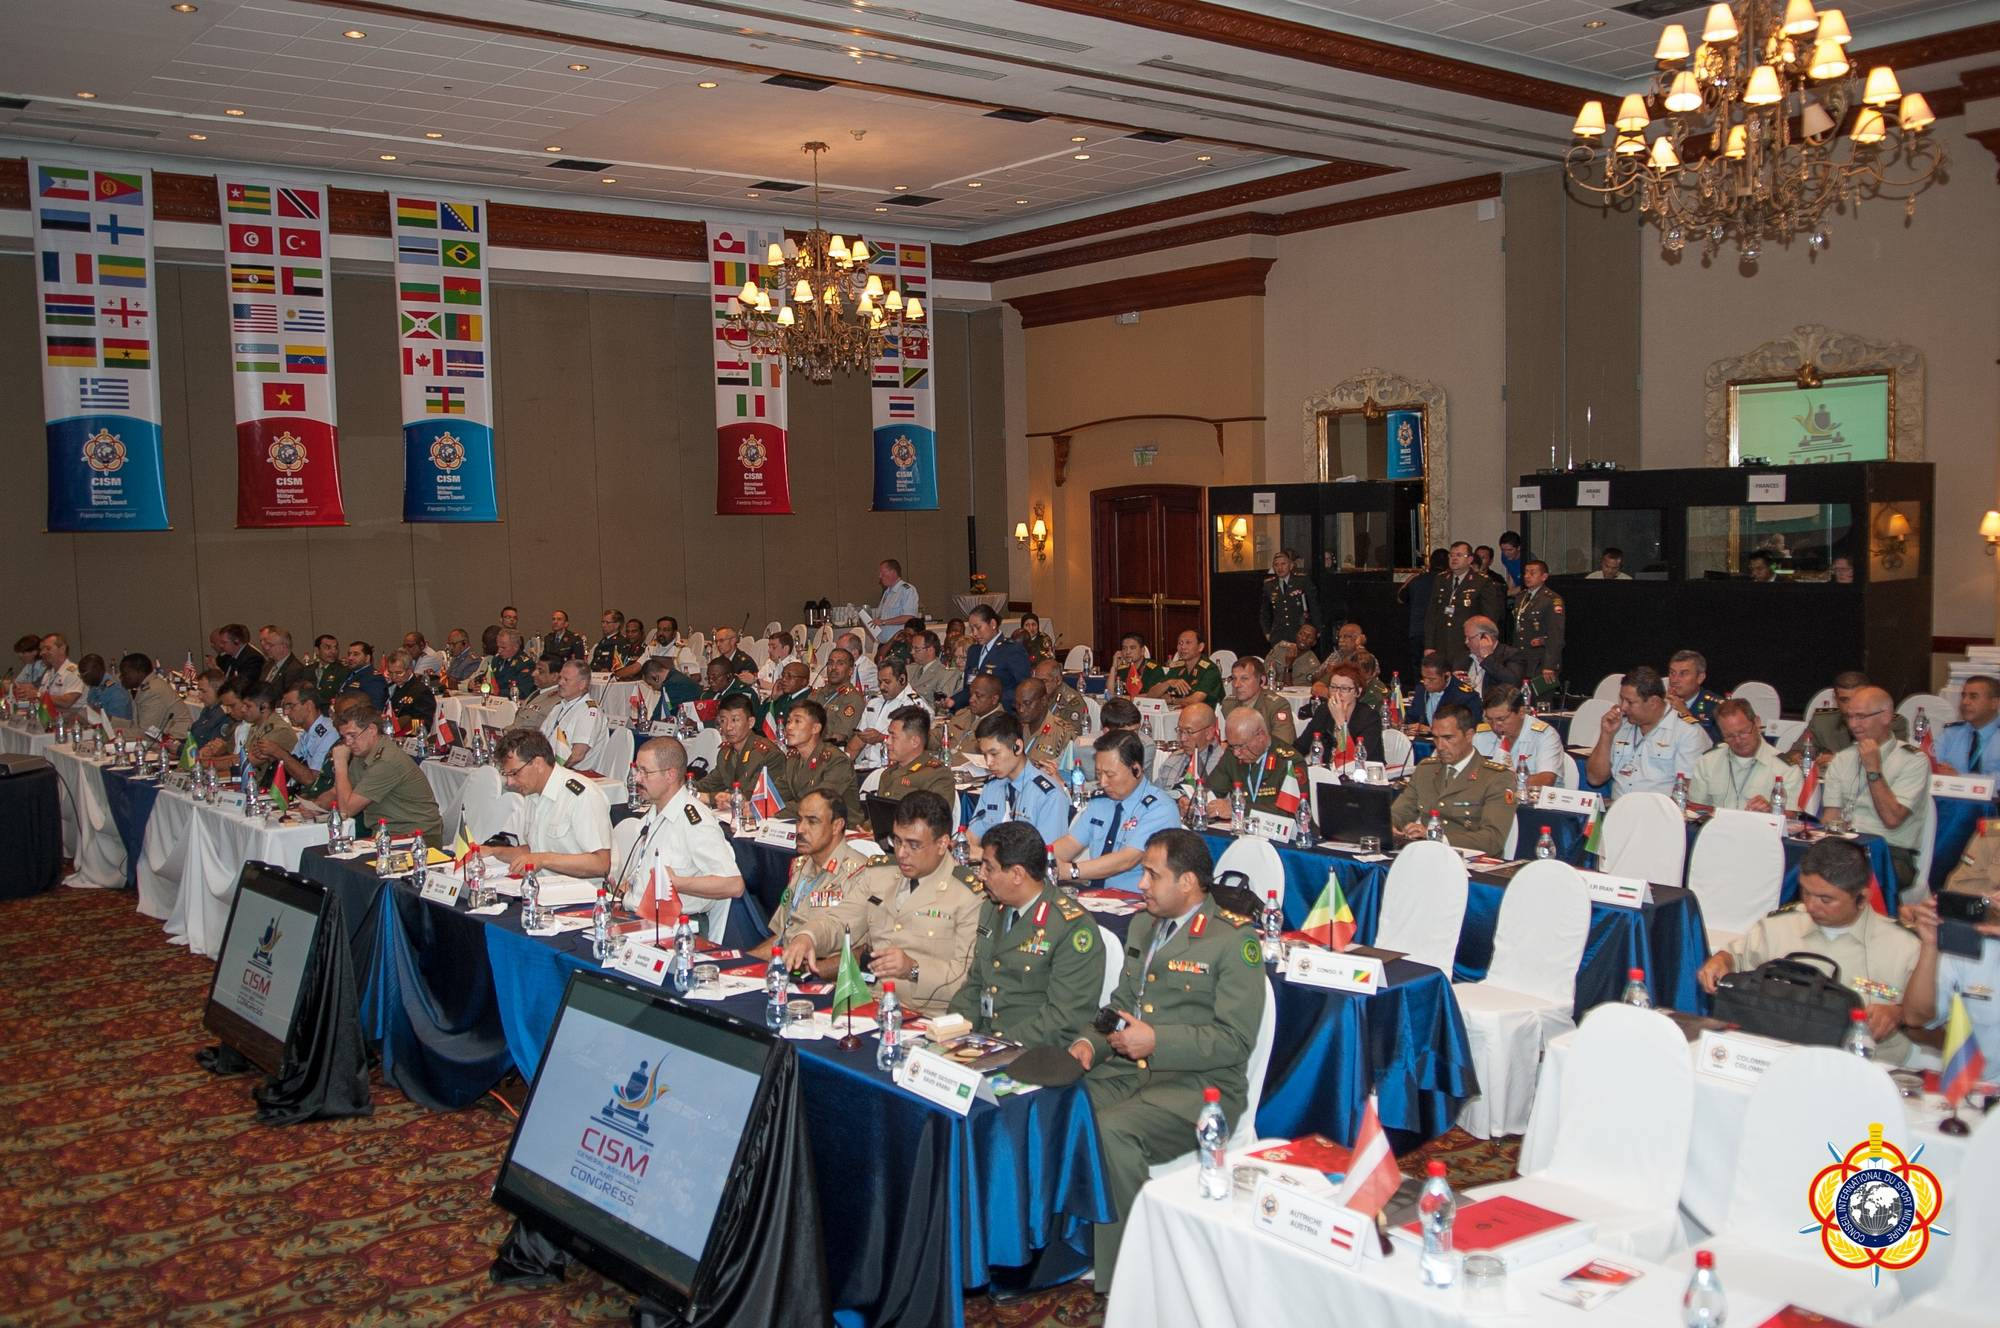 The General Assembly of CISM approves the CISM strategic and annual business plans, the accounts and the budget, the acceptance of new member nations and ...